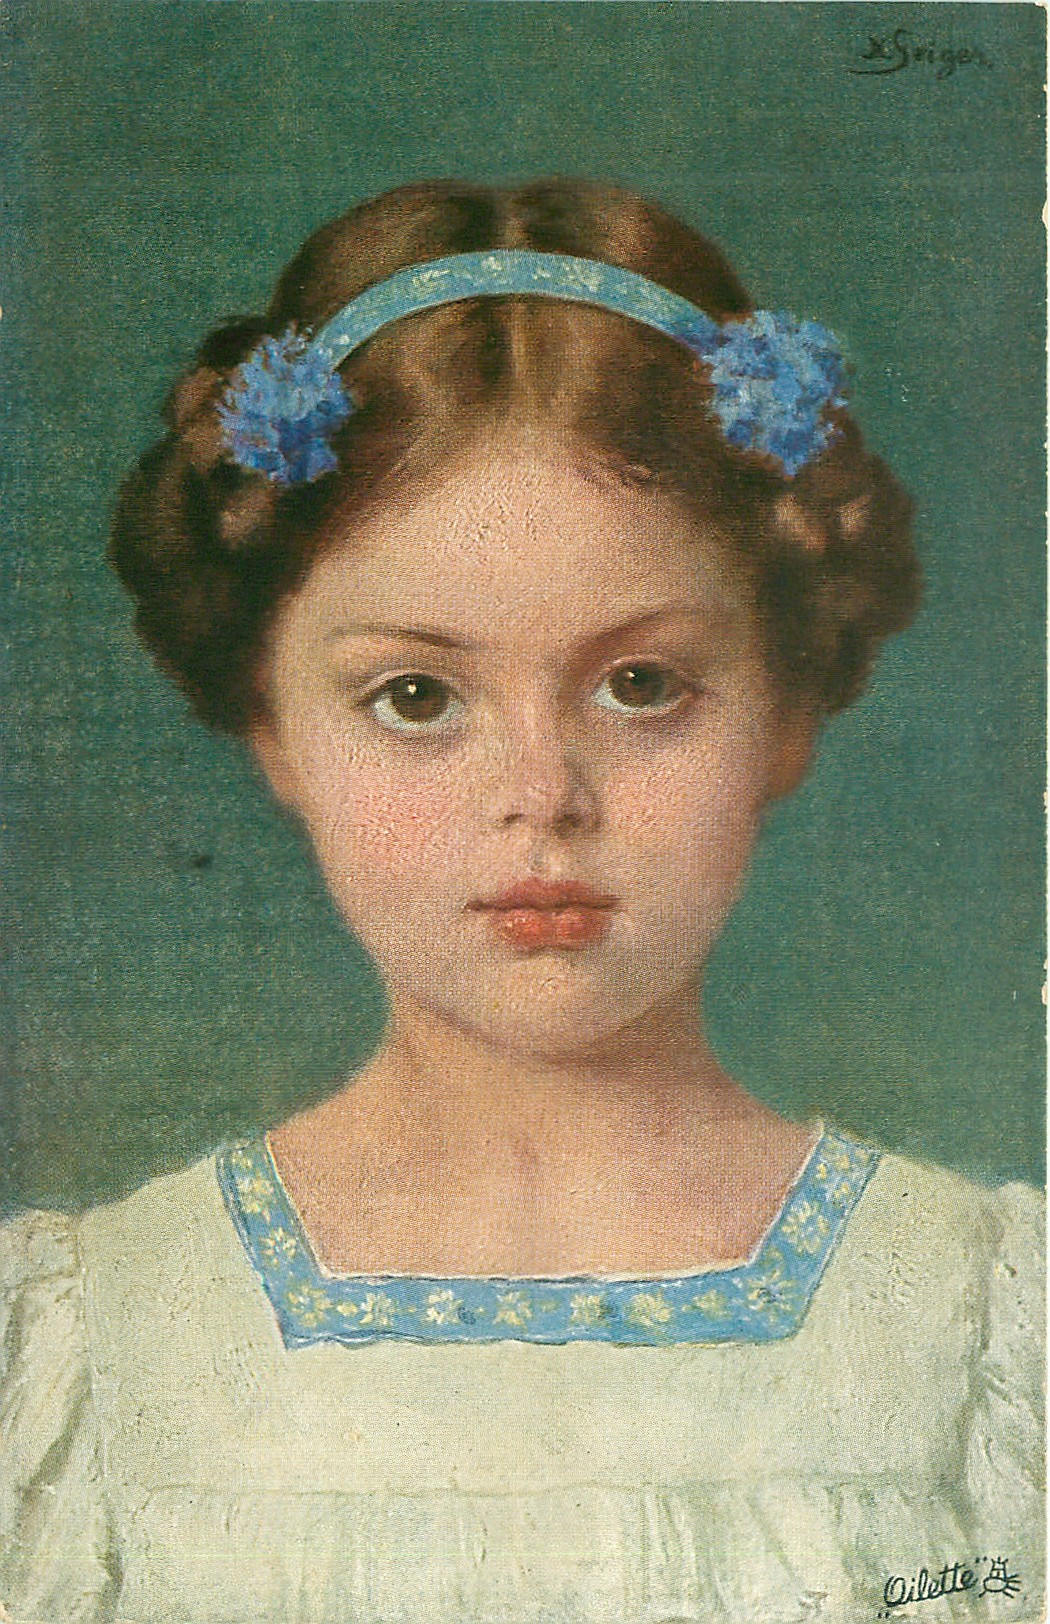 head & shoulder study, girl with hair up under blue headband with cornflowers, wears white dress with blue trim, faces & looks front